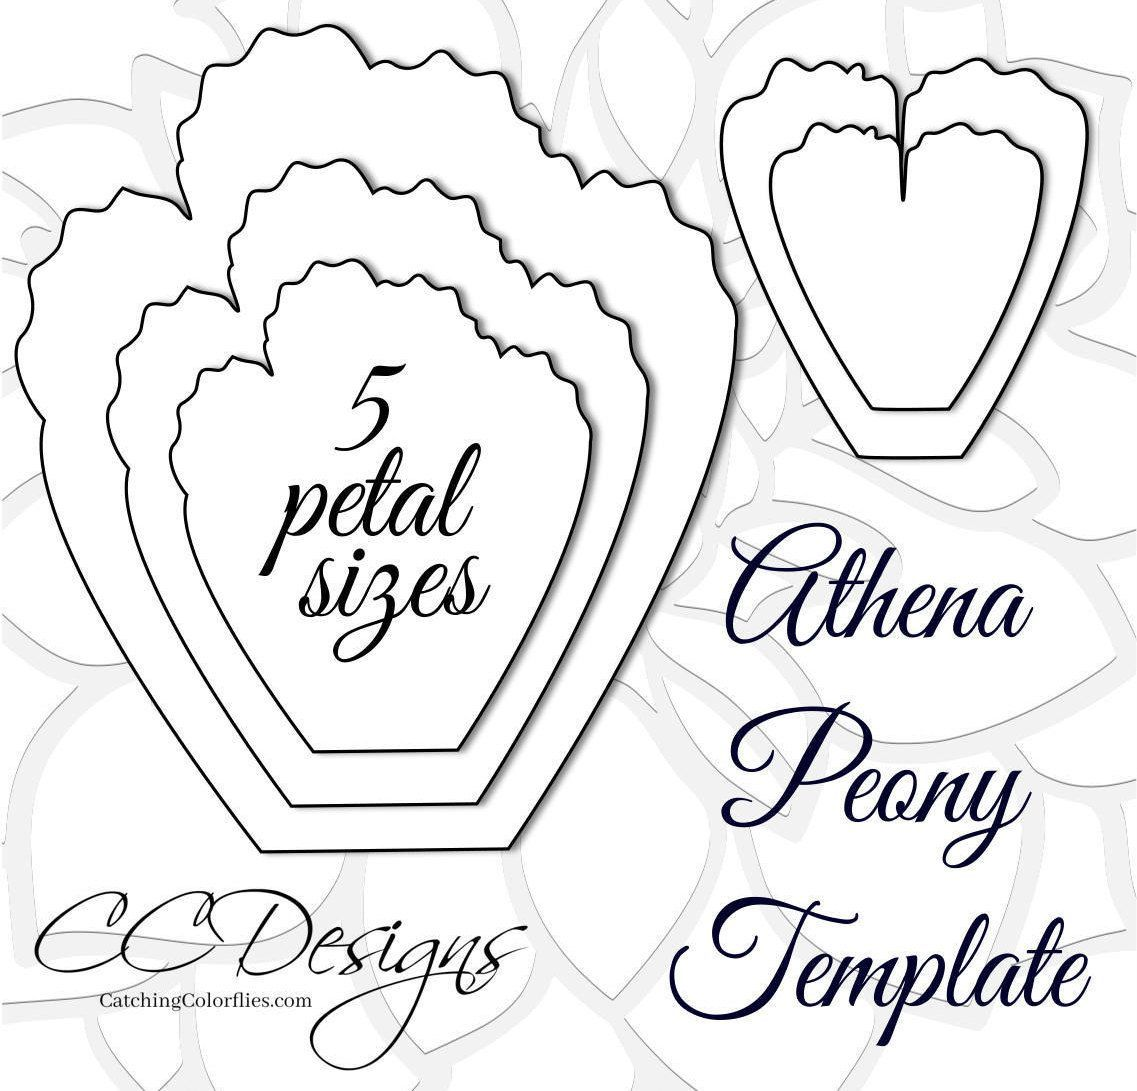 Peony Petal Template Google Search Paper Flower Patterns